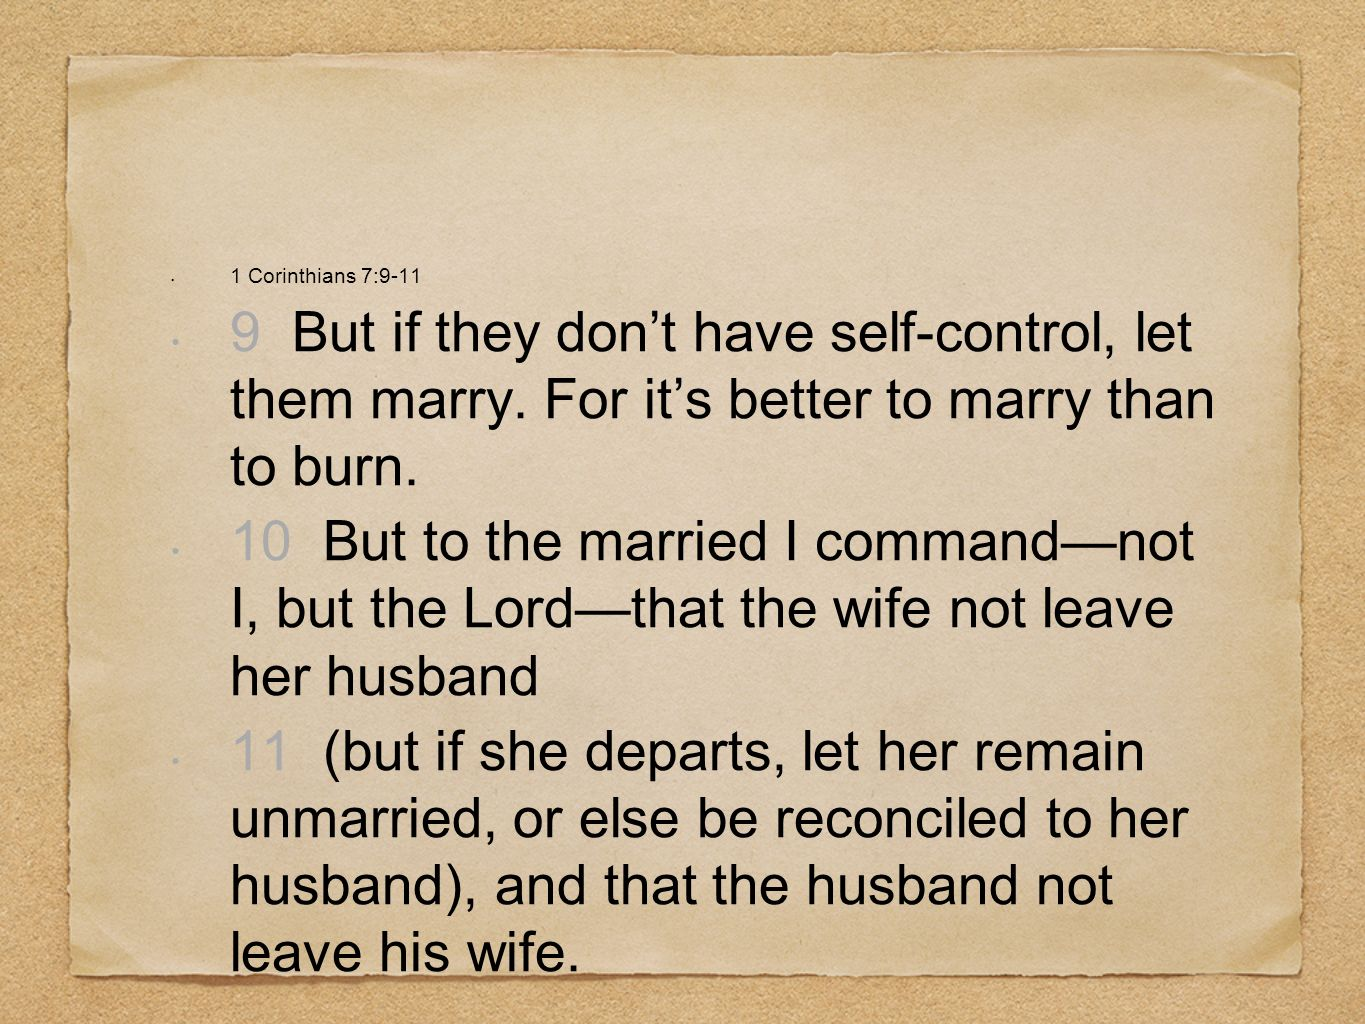 1 Corinthians 7:9-119 But if they don't have self-control, let them marry. For it's better to marry than to burn.